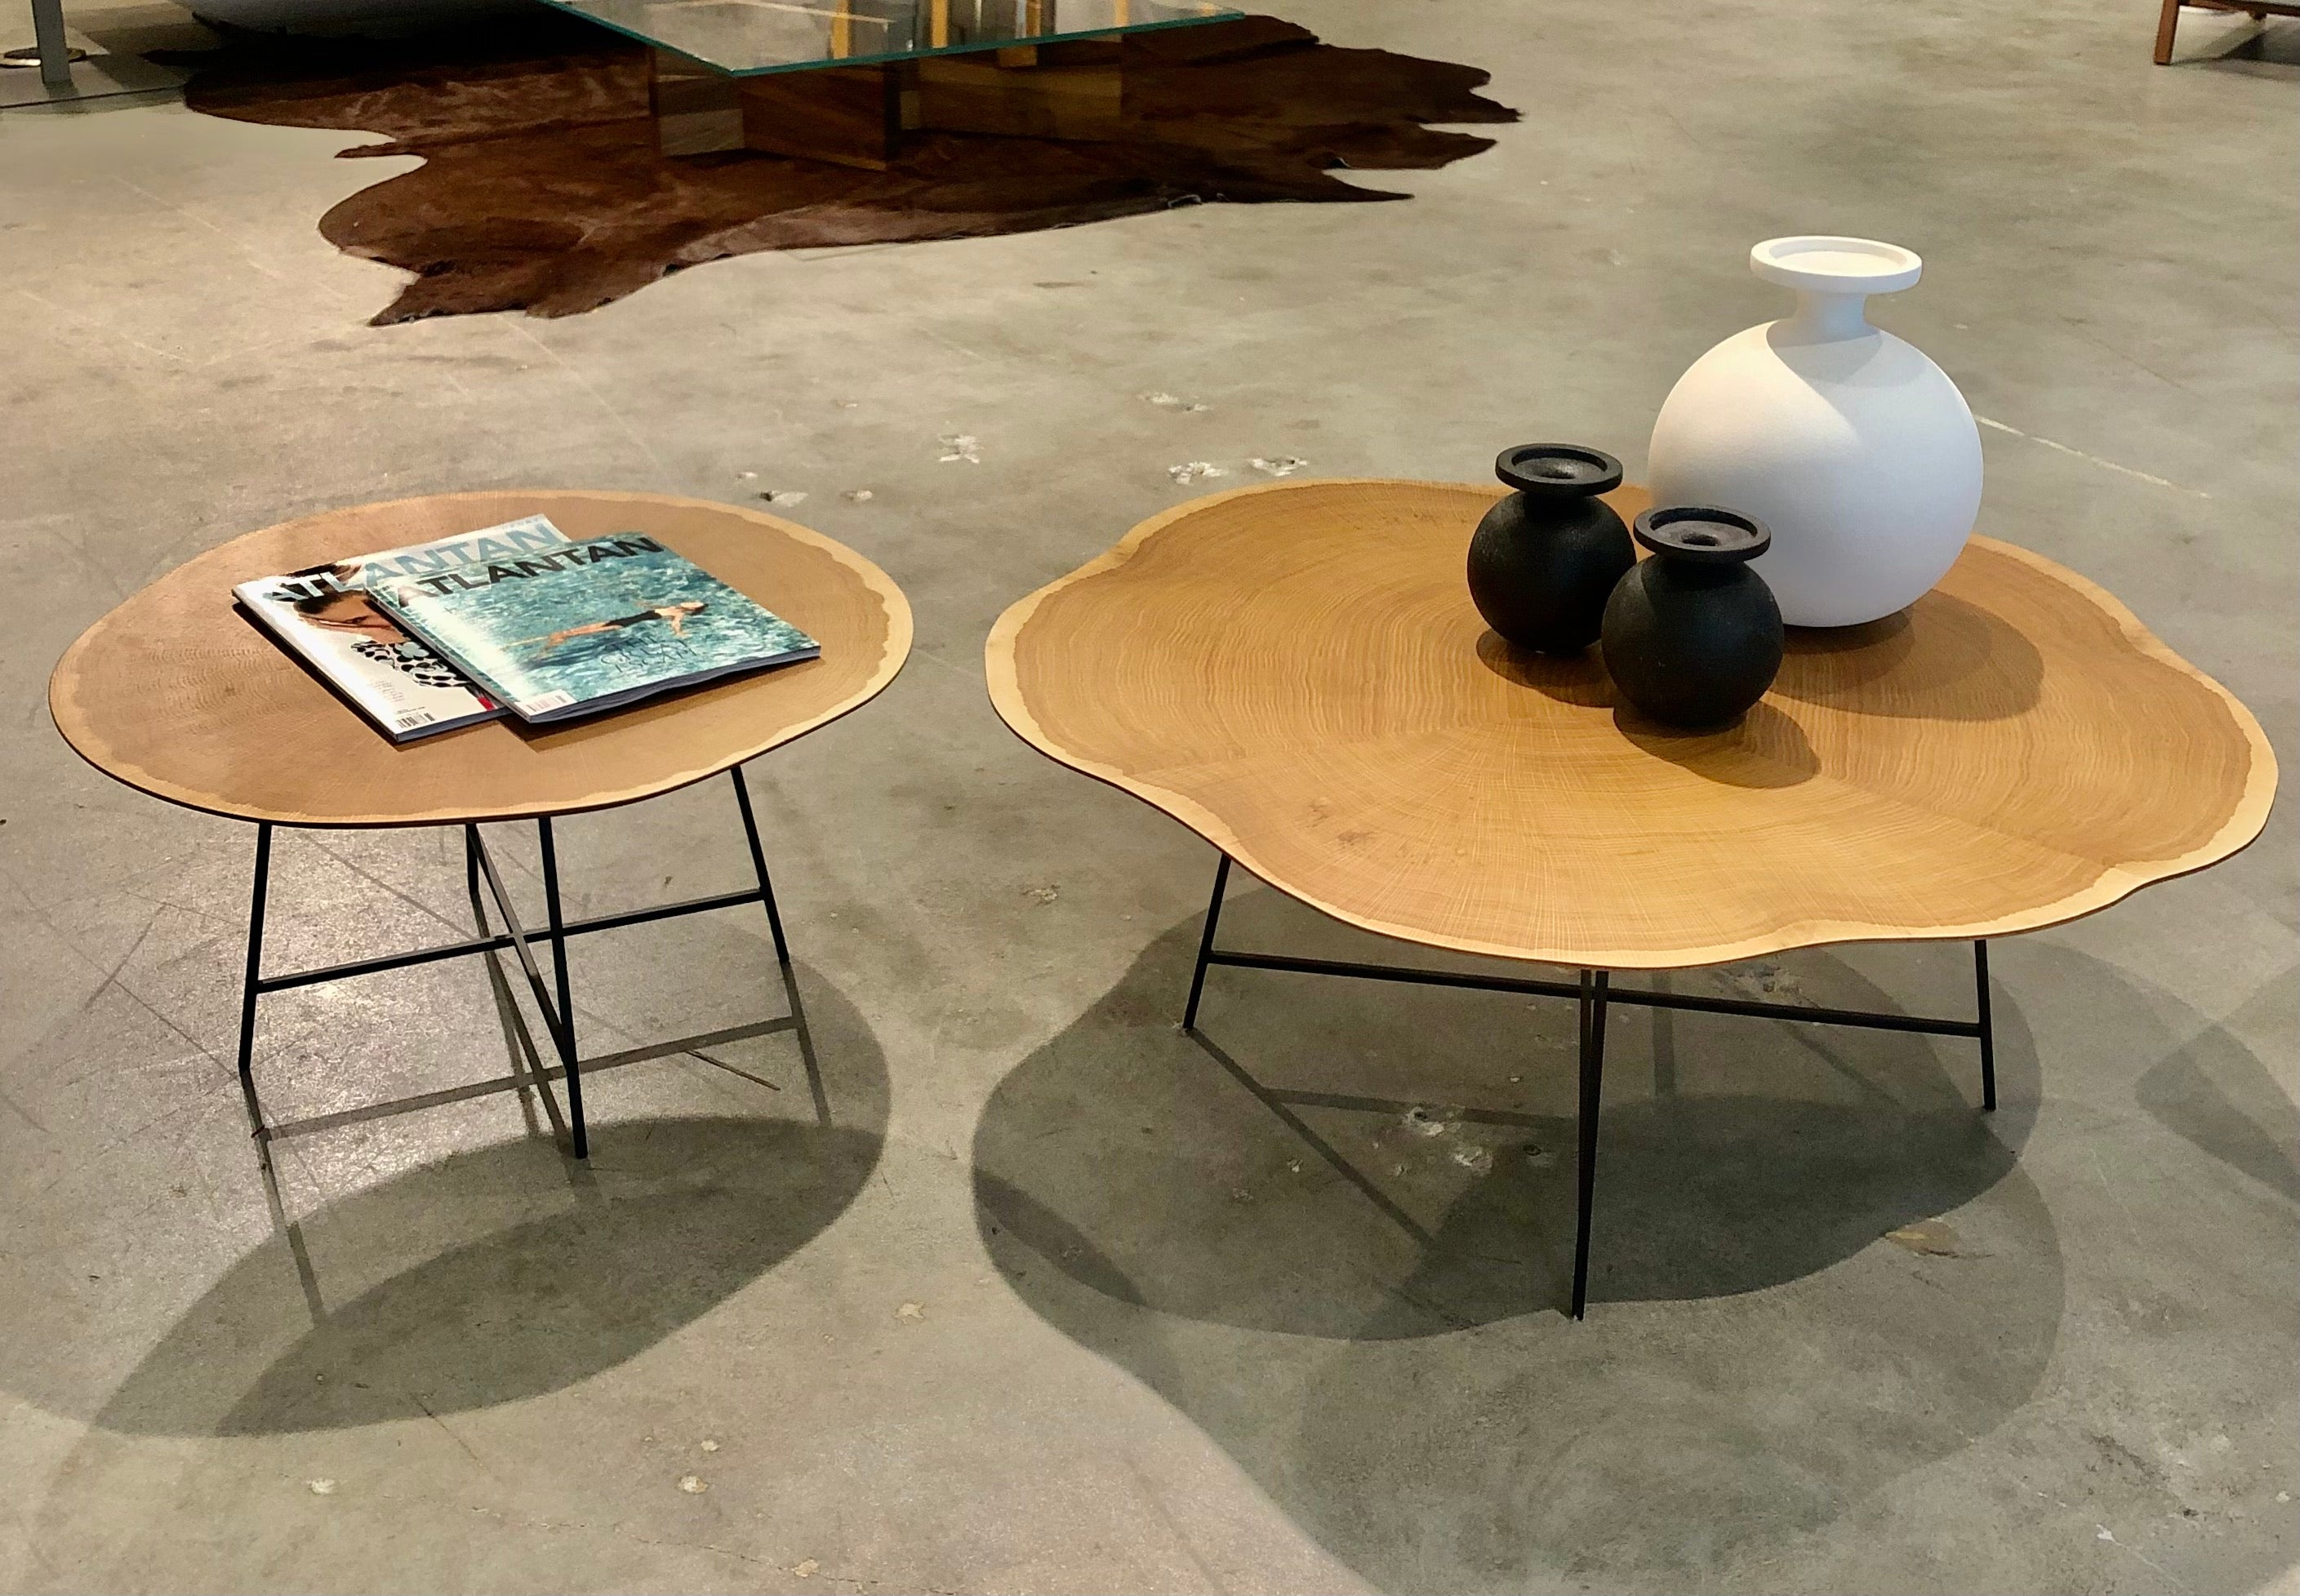 ALBURNI TABLES - Floor Sample